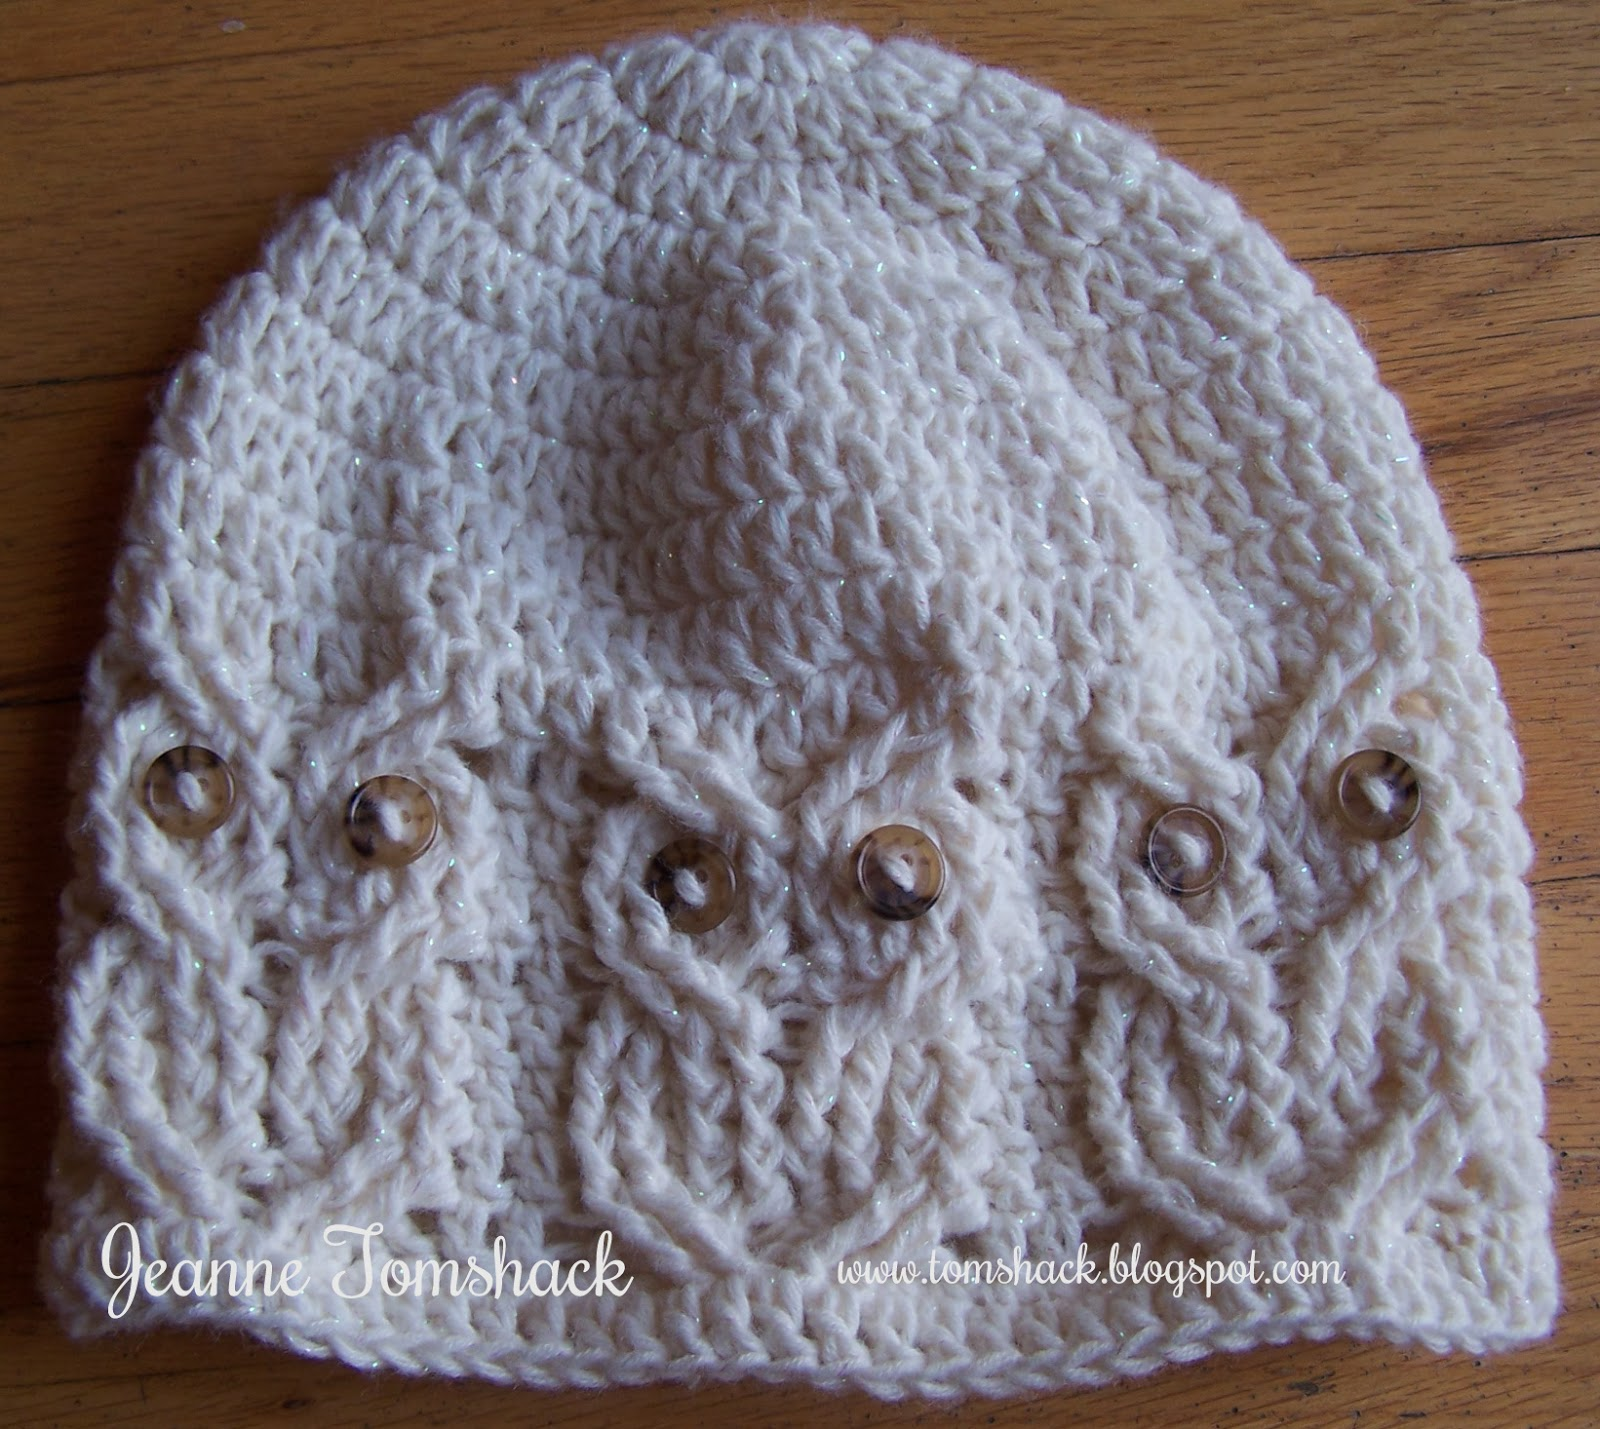 Creative Bliss: Crocheted Owl Gifts